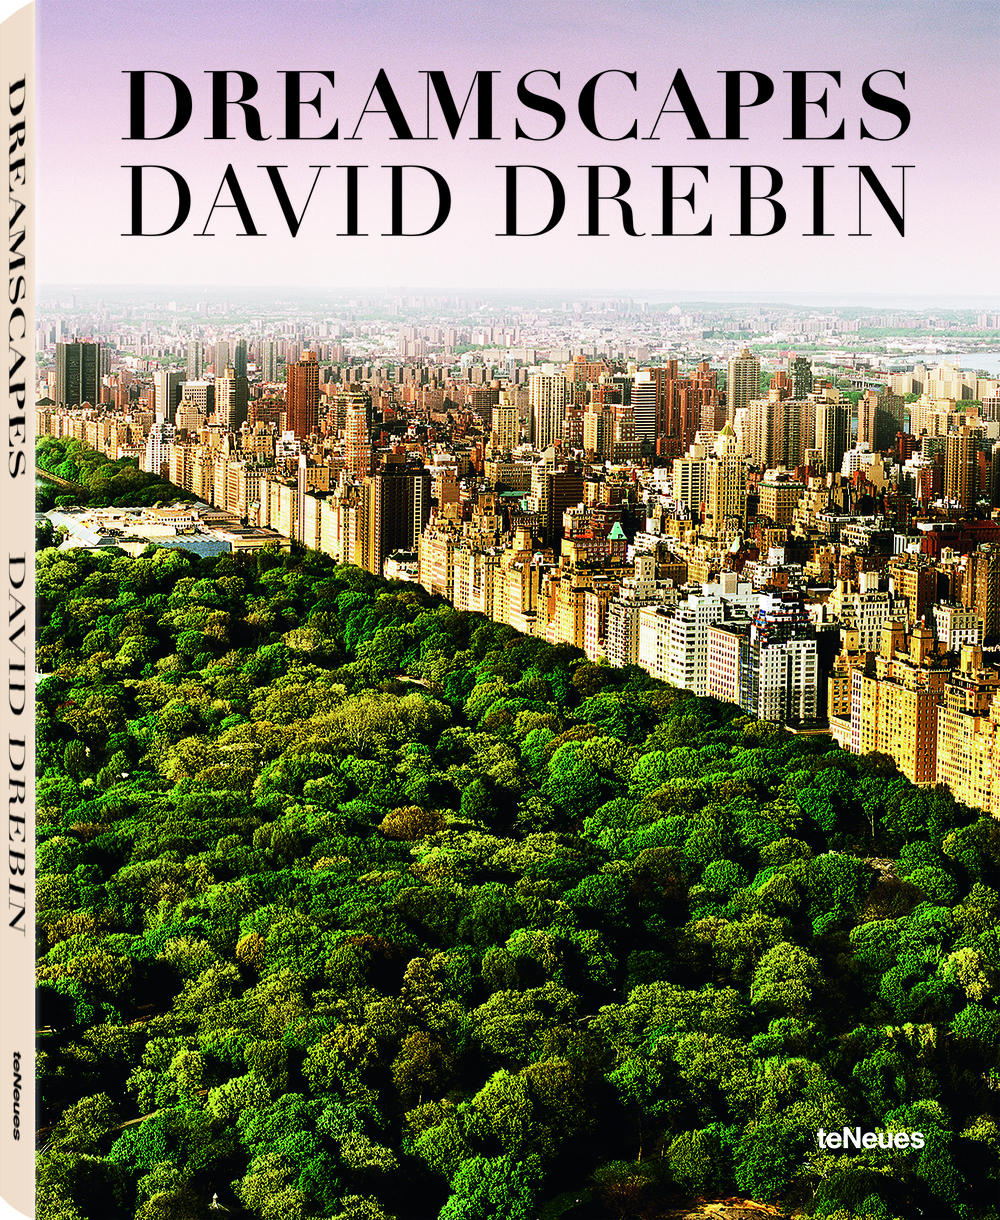 © Dreamscapes by David Drebin, to be published by teNeues in July 2016, € 49,90,   www.teneues.com  .   DREAMS OF CENTRAL PARK, 2006  , Photo © 2016 David Drebin. All rights reserved.   www.daviddrebin.com